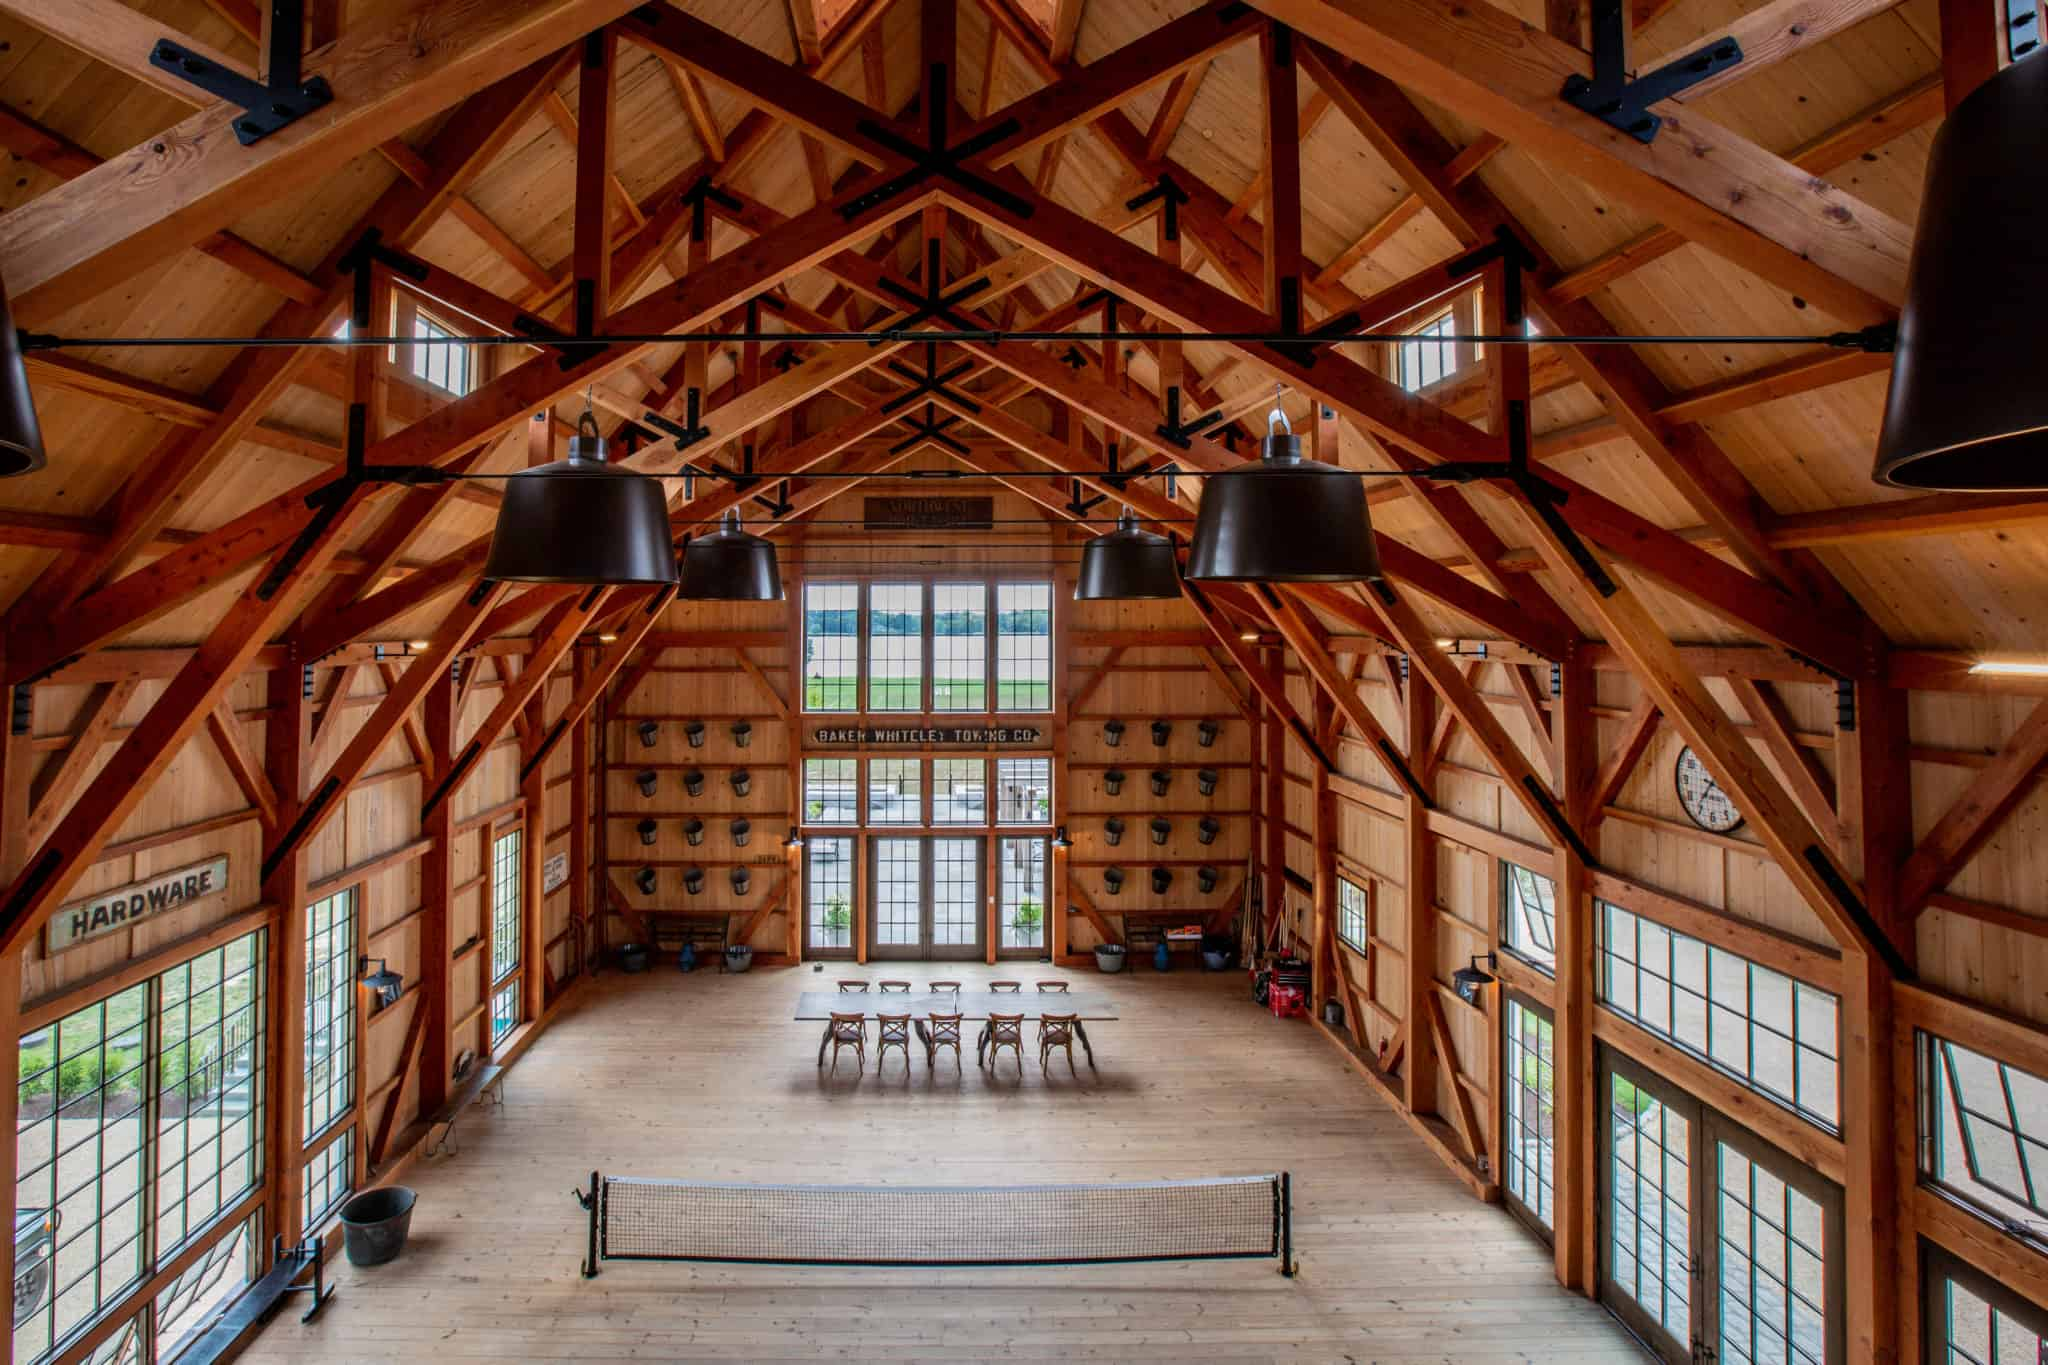 elevated view of newly built party barn with large windows and symmetrical ceiling beams